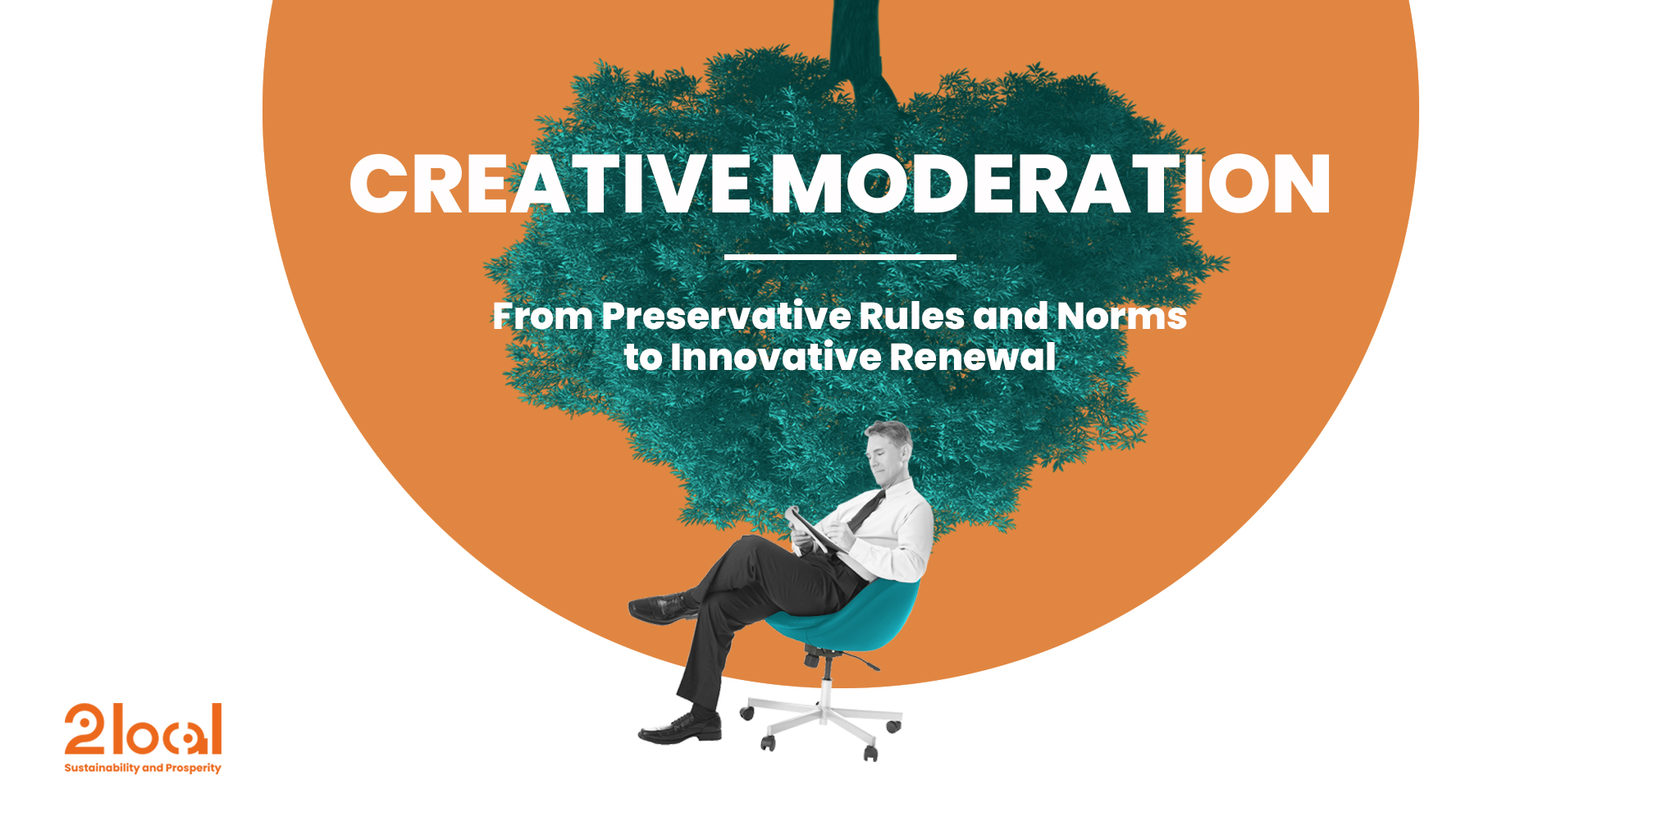 2local Strategy. Creative Moderation: From Preservative Rules and Norms to Innovative Renewal